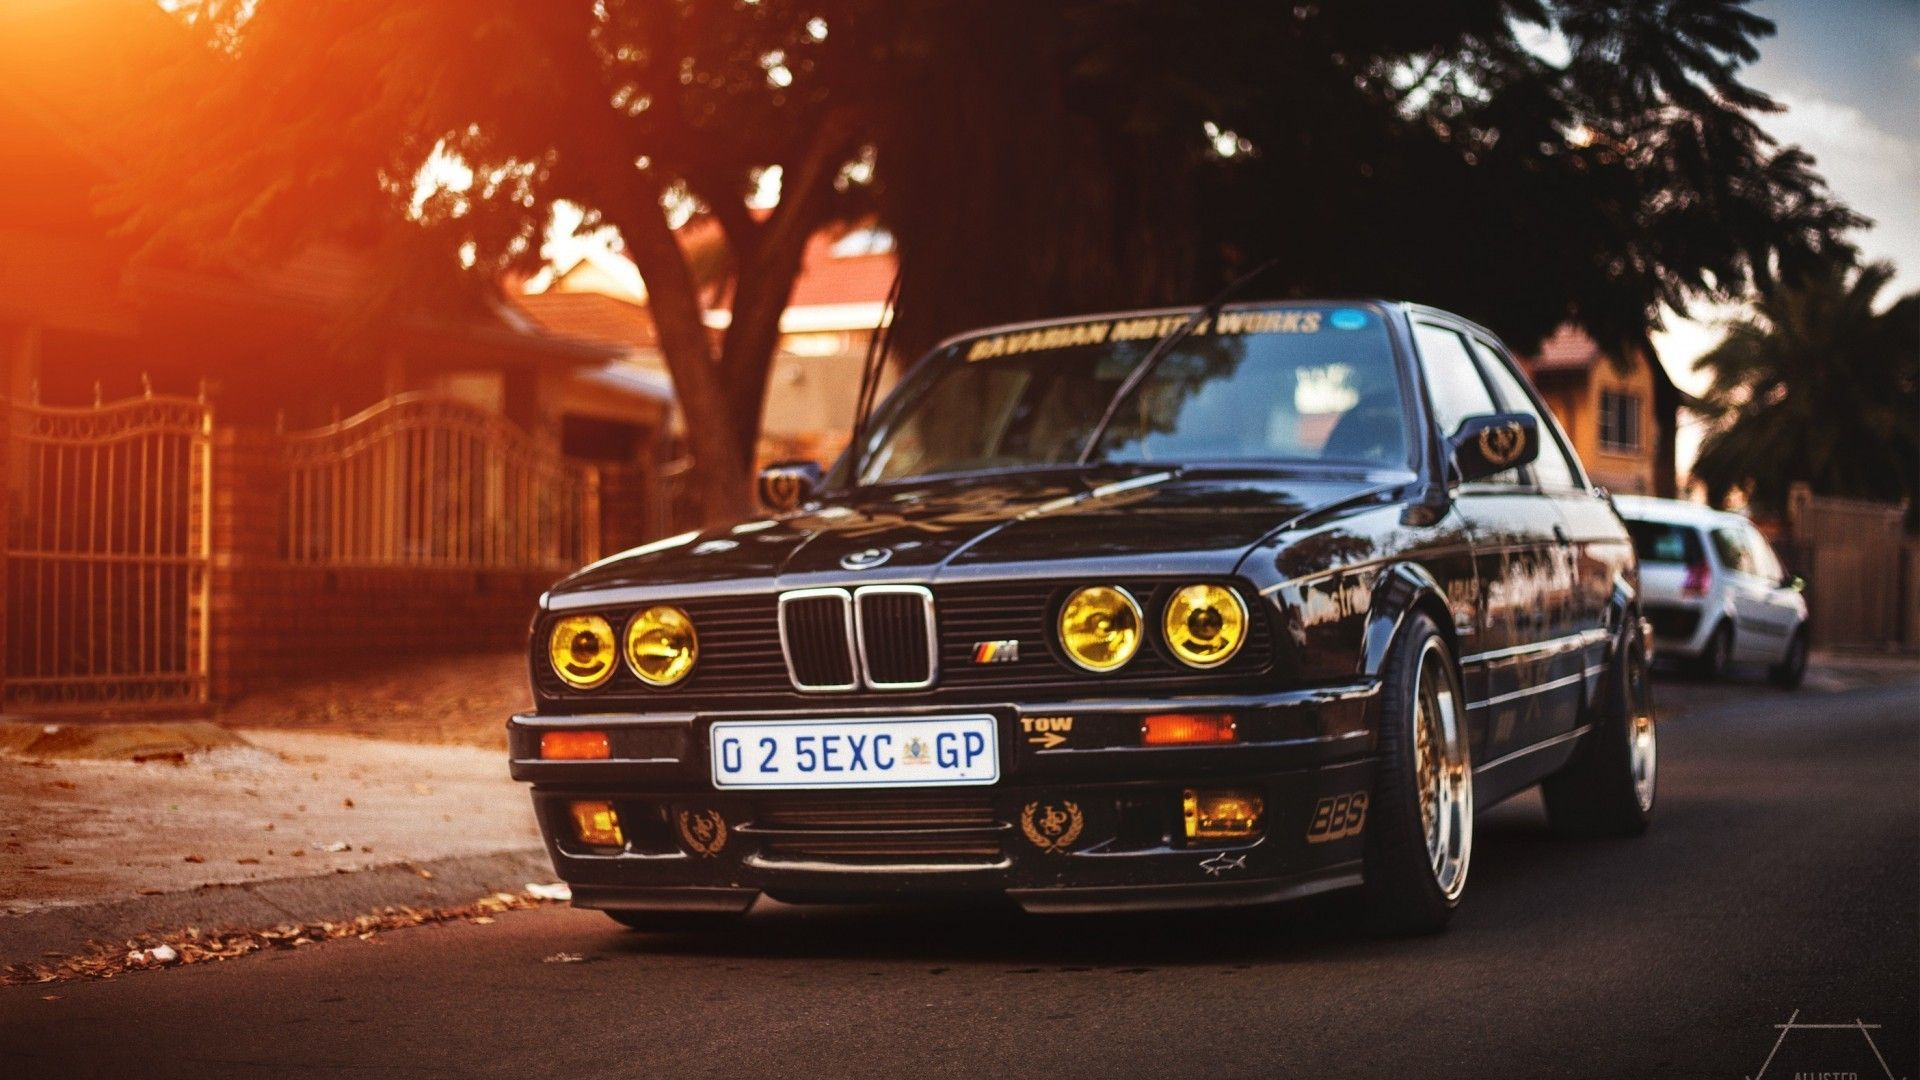 Bmw E30 Wallpapers Top Free Bmw E30 Backgrounds